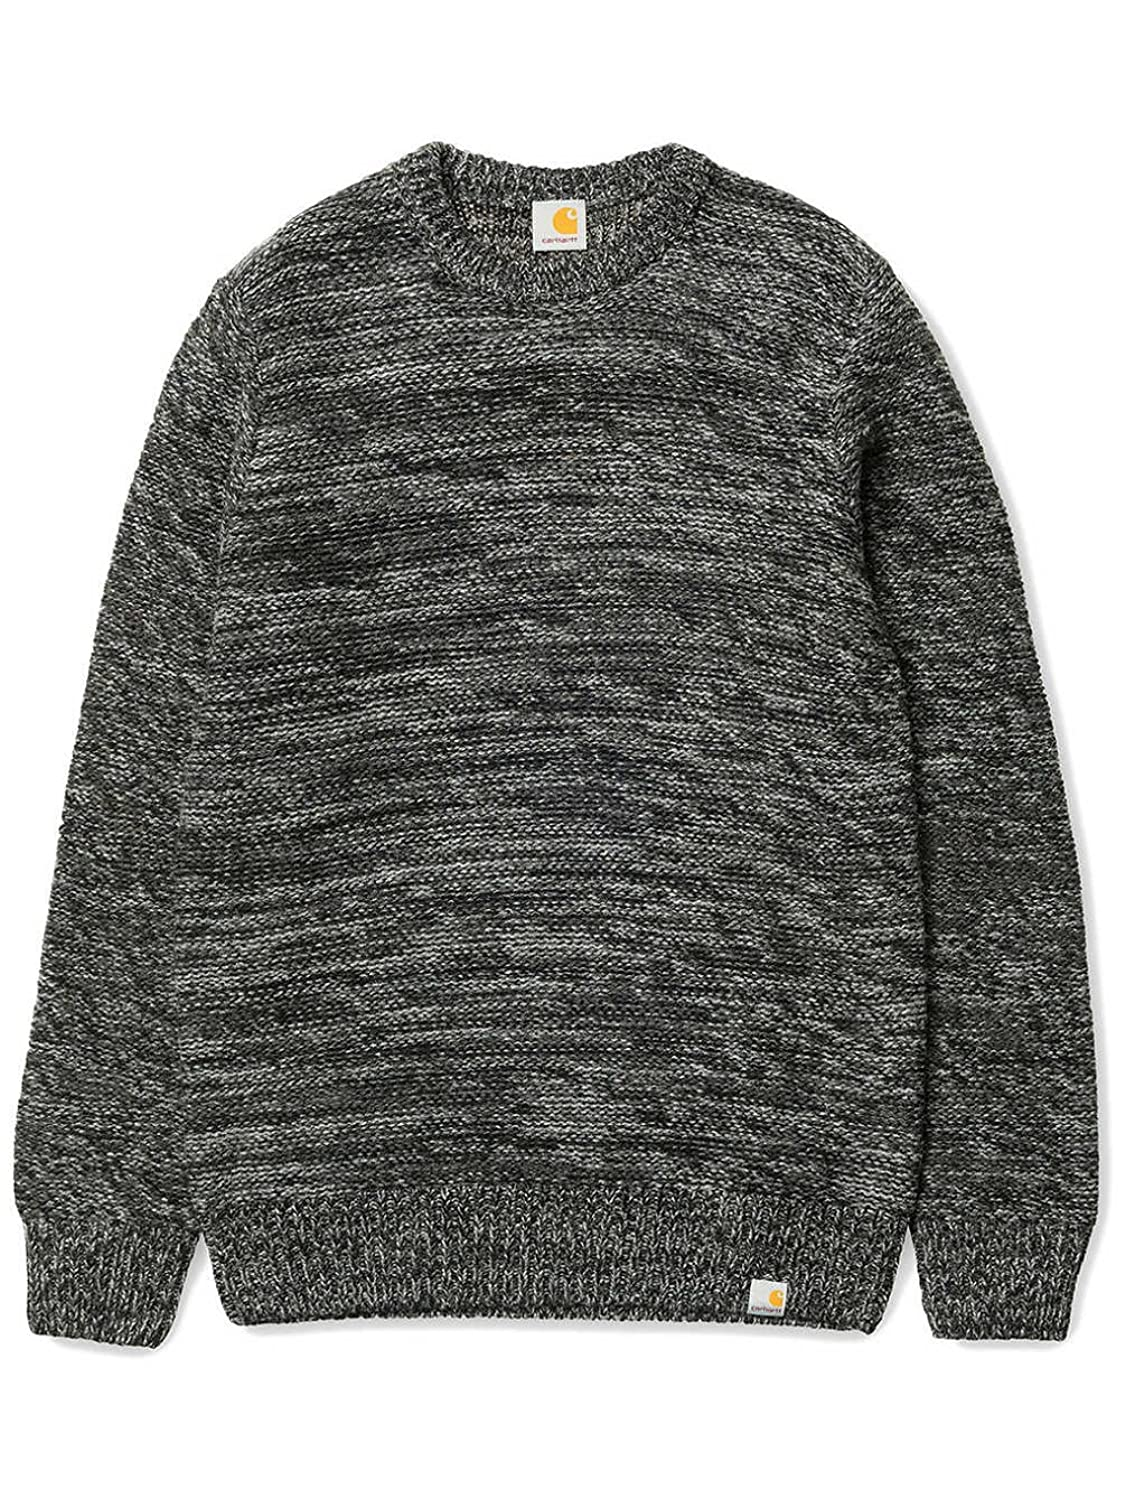 CARHARTT WIP - Crew-neck Sweaters - Men - Black and Grey Wool Accent Jumper for men